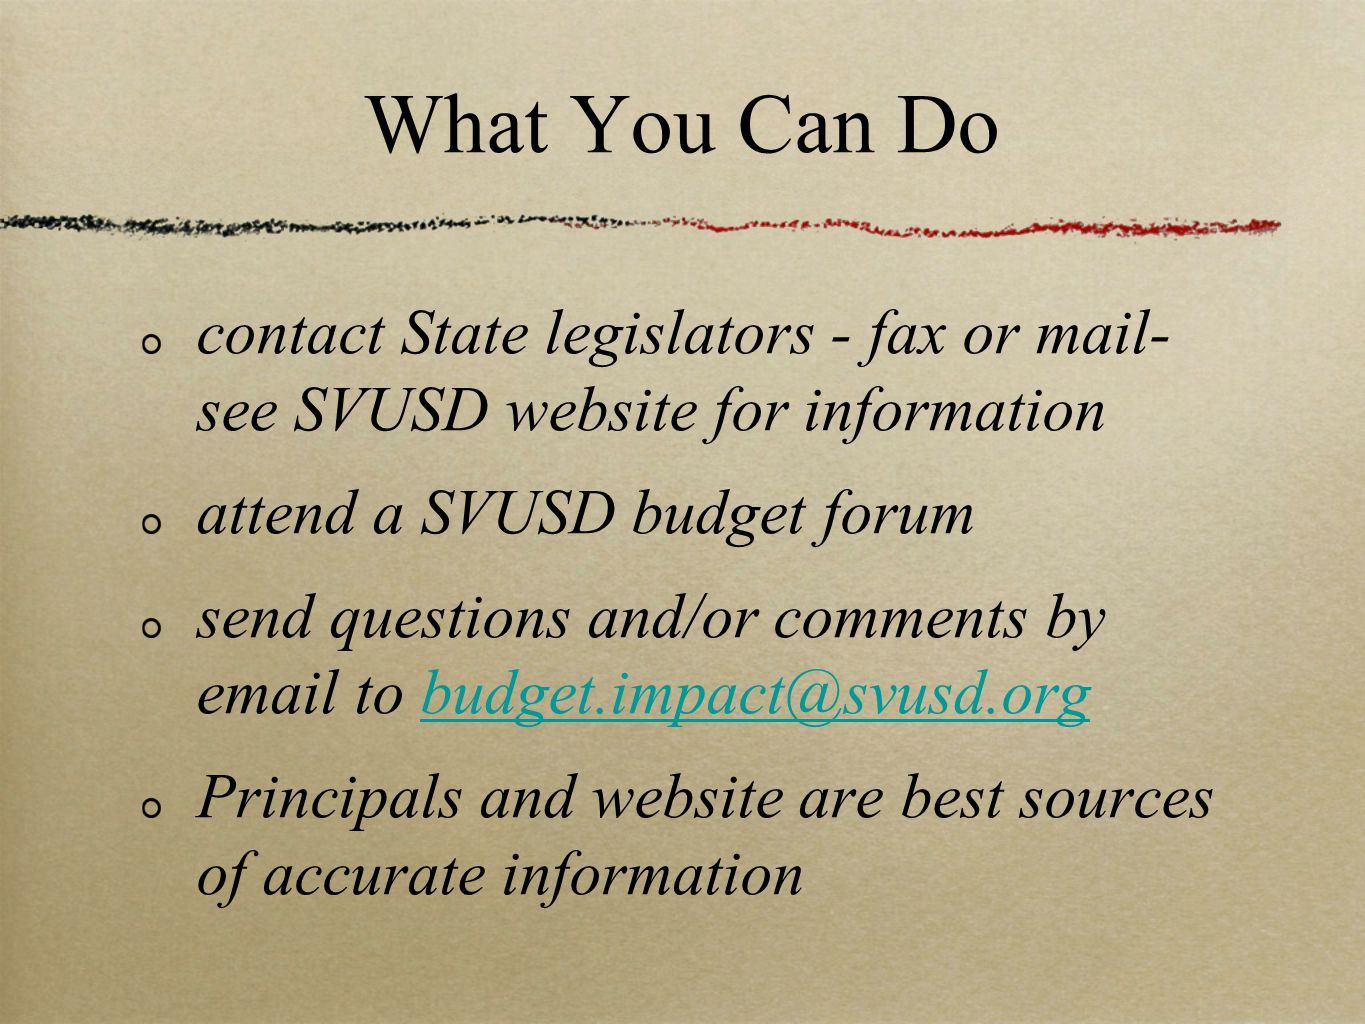 What You Can Do contact State legislators - fax or mail- see SVUSD website for information attend a SVUSD budget forum send questions and/or comments by email to budget.impact@svusd.orgbudget.impact@svusd.org Principals and website are best sources of accurate information